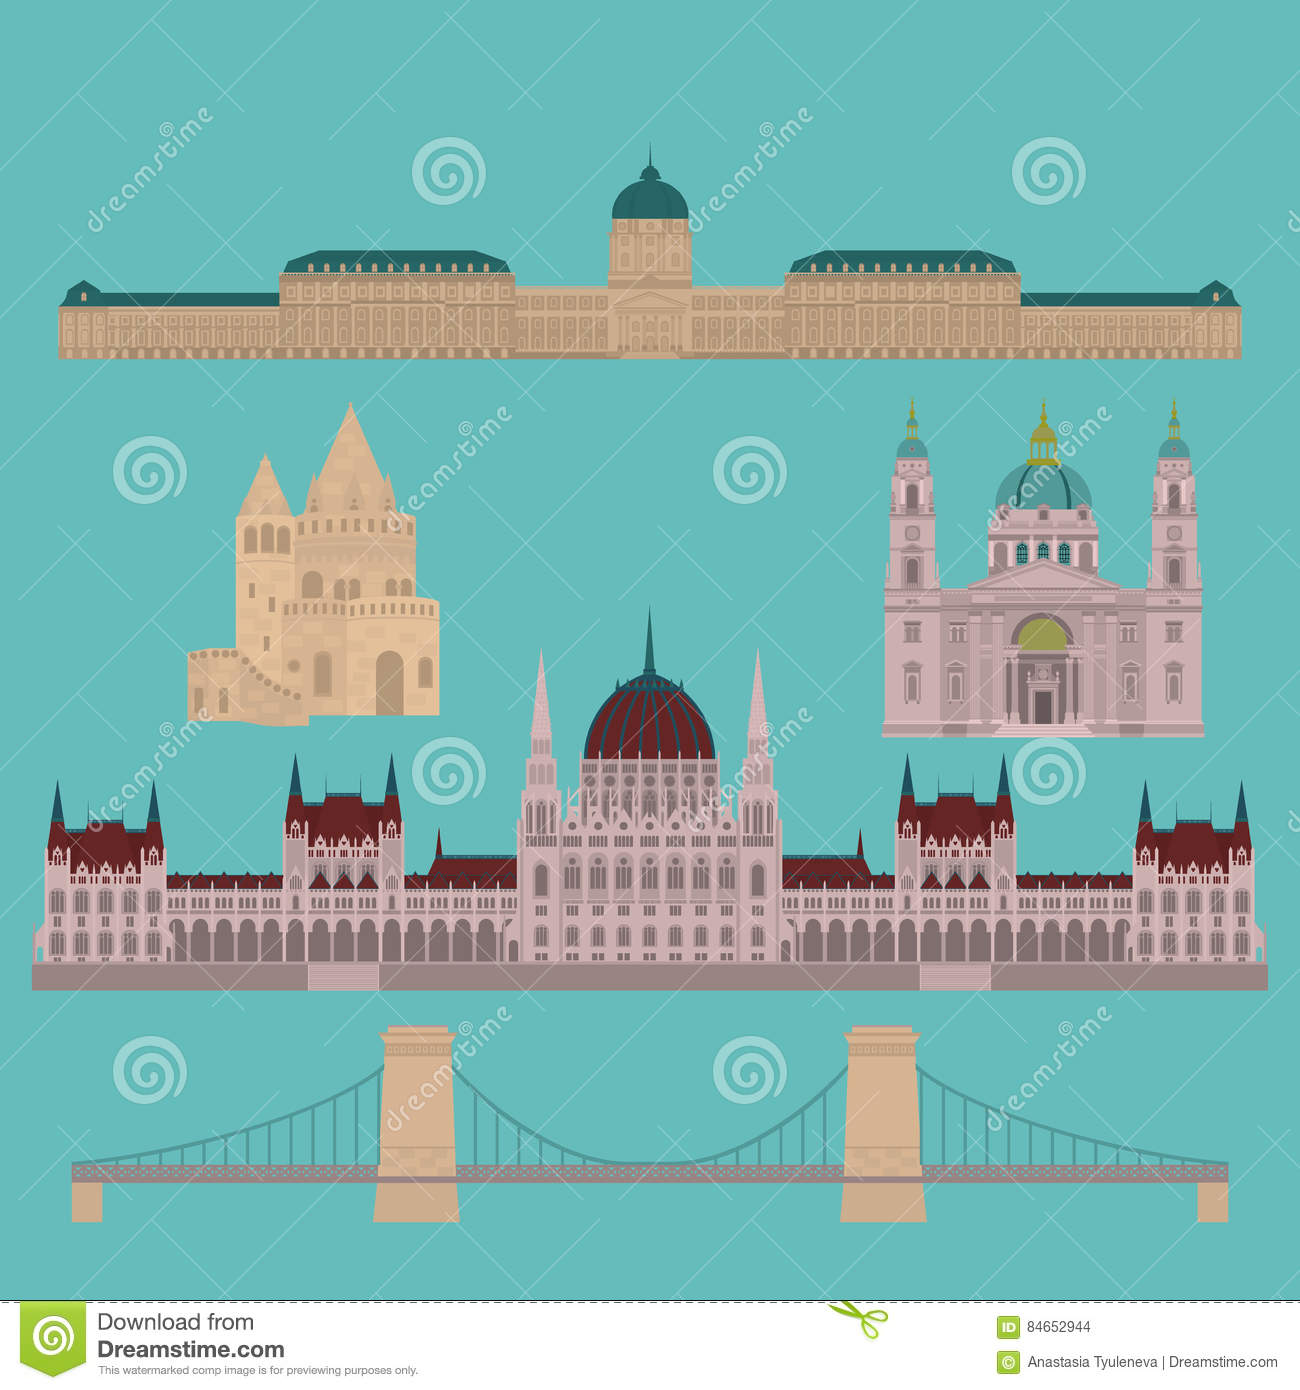 Hungarian City Sights In Budapest. Hungary Landmark Travel And.